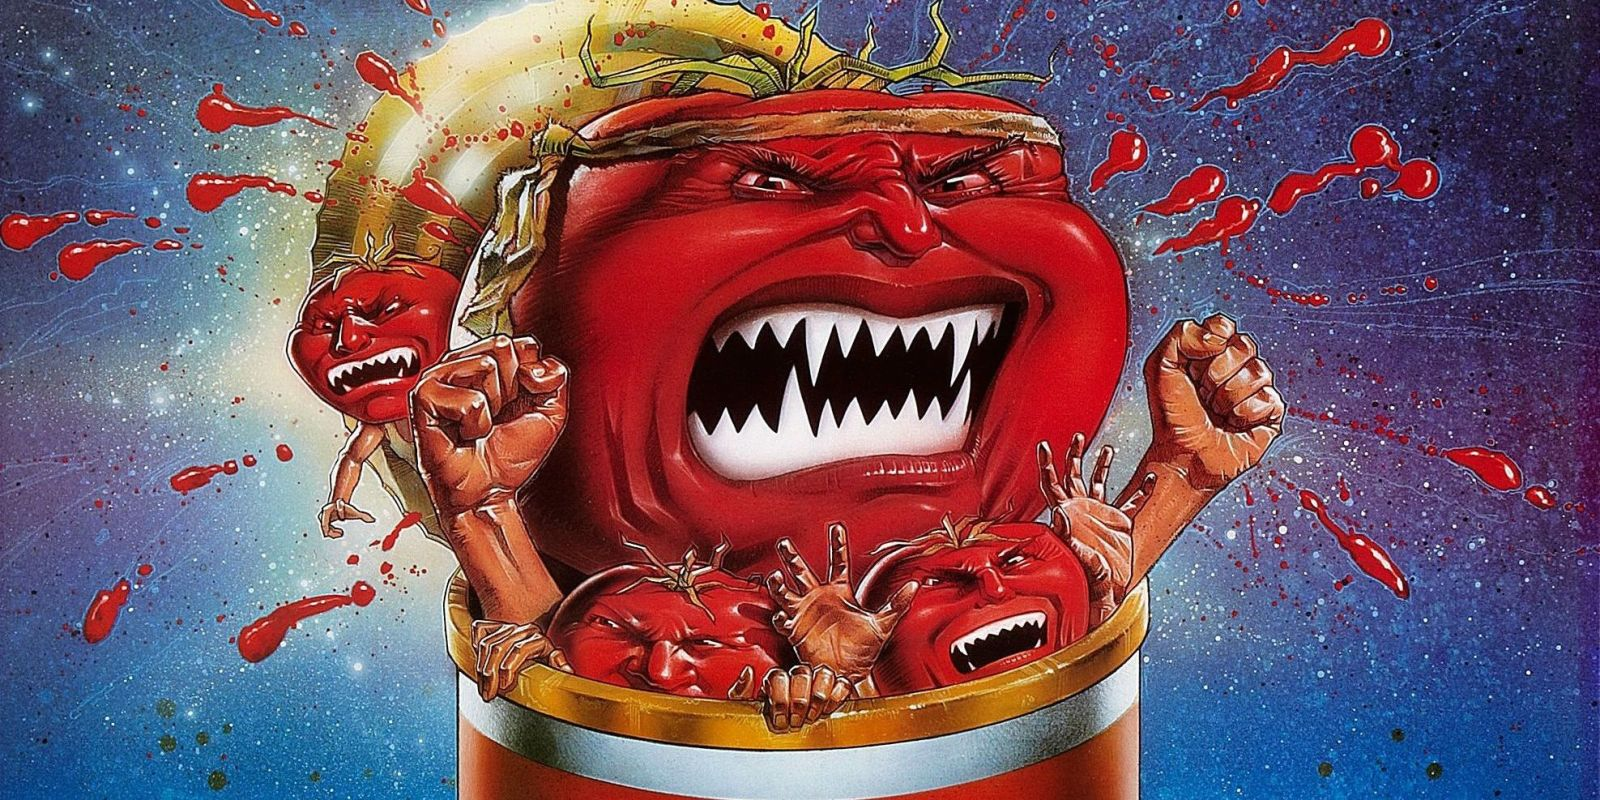 7 Attack of the Killer Tomatoes